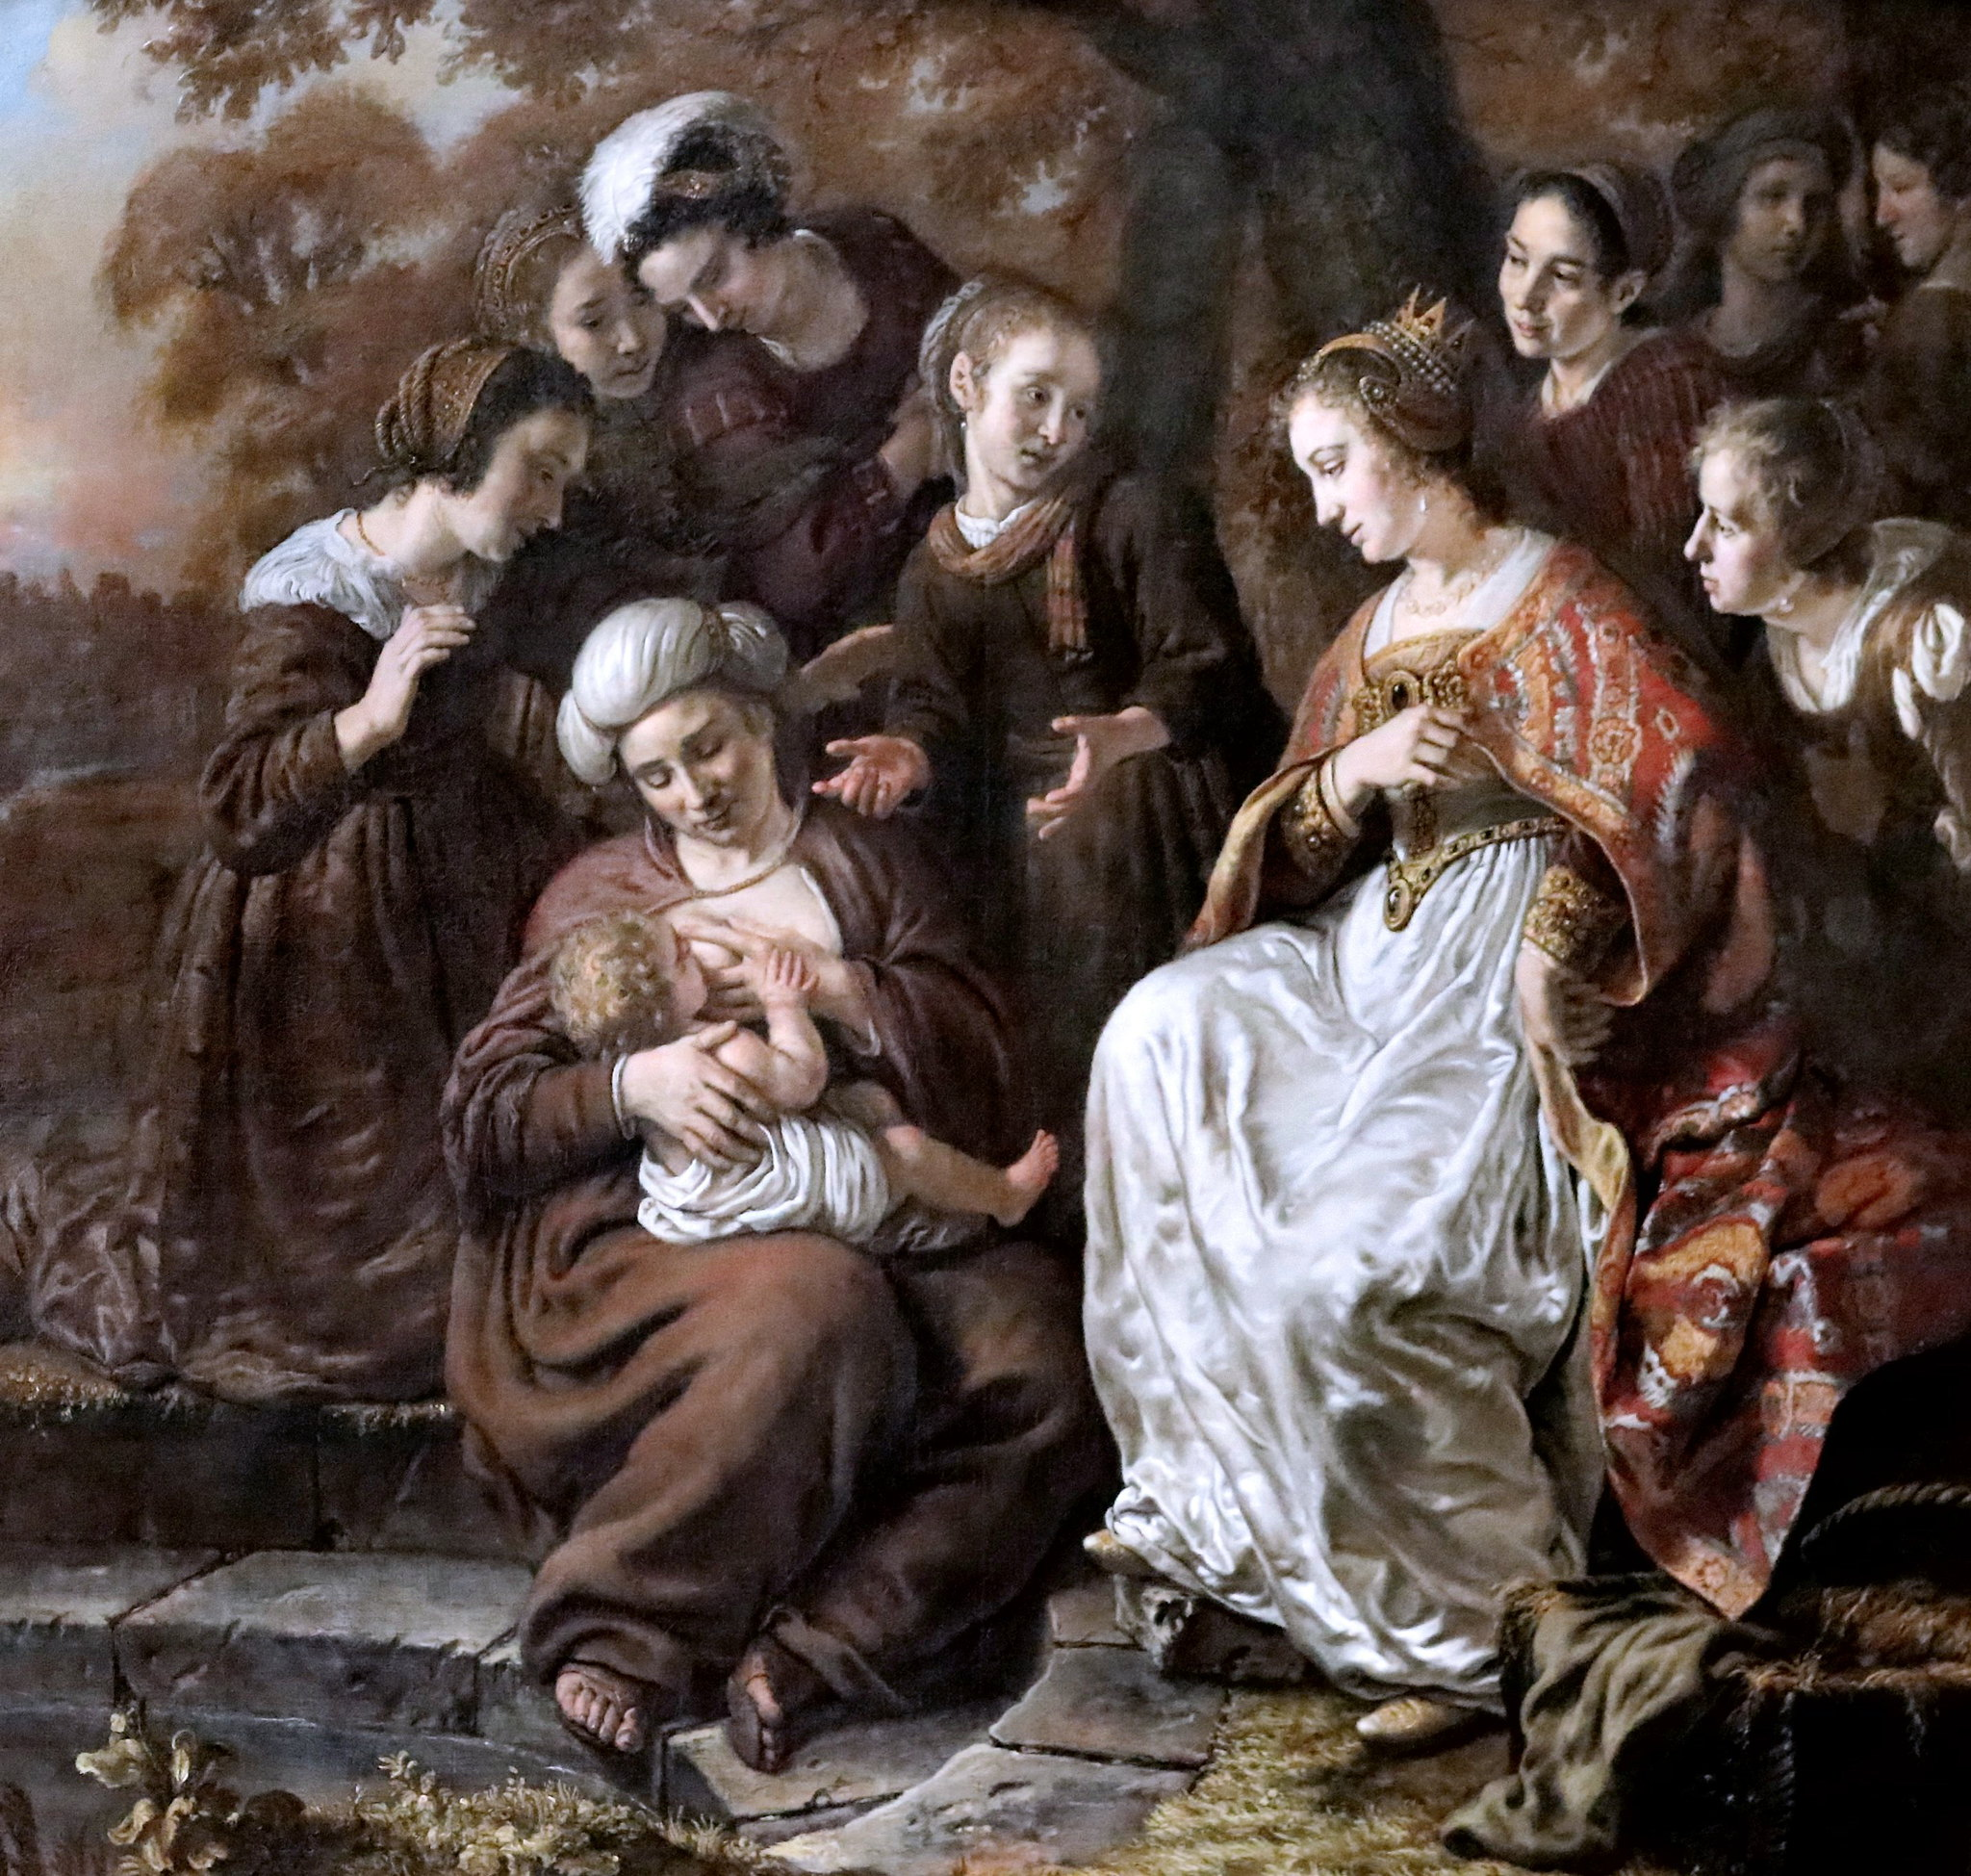 jan victors 1653 The Finding of Moses Gemaldegalerie Alte Meister Dresde photo JL Mazieres